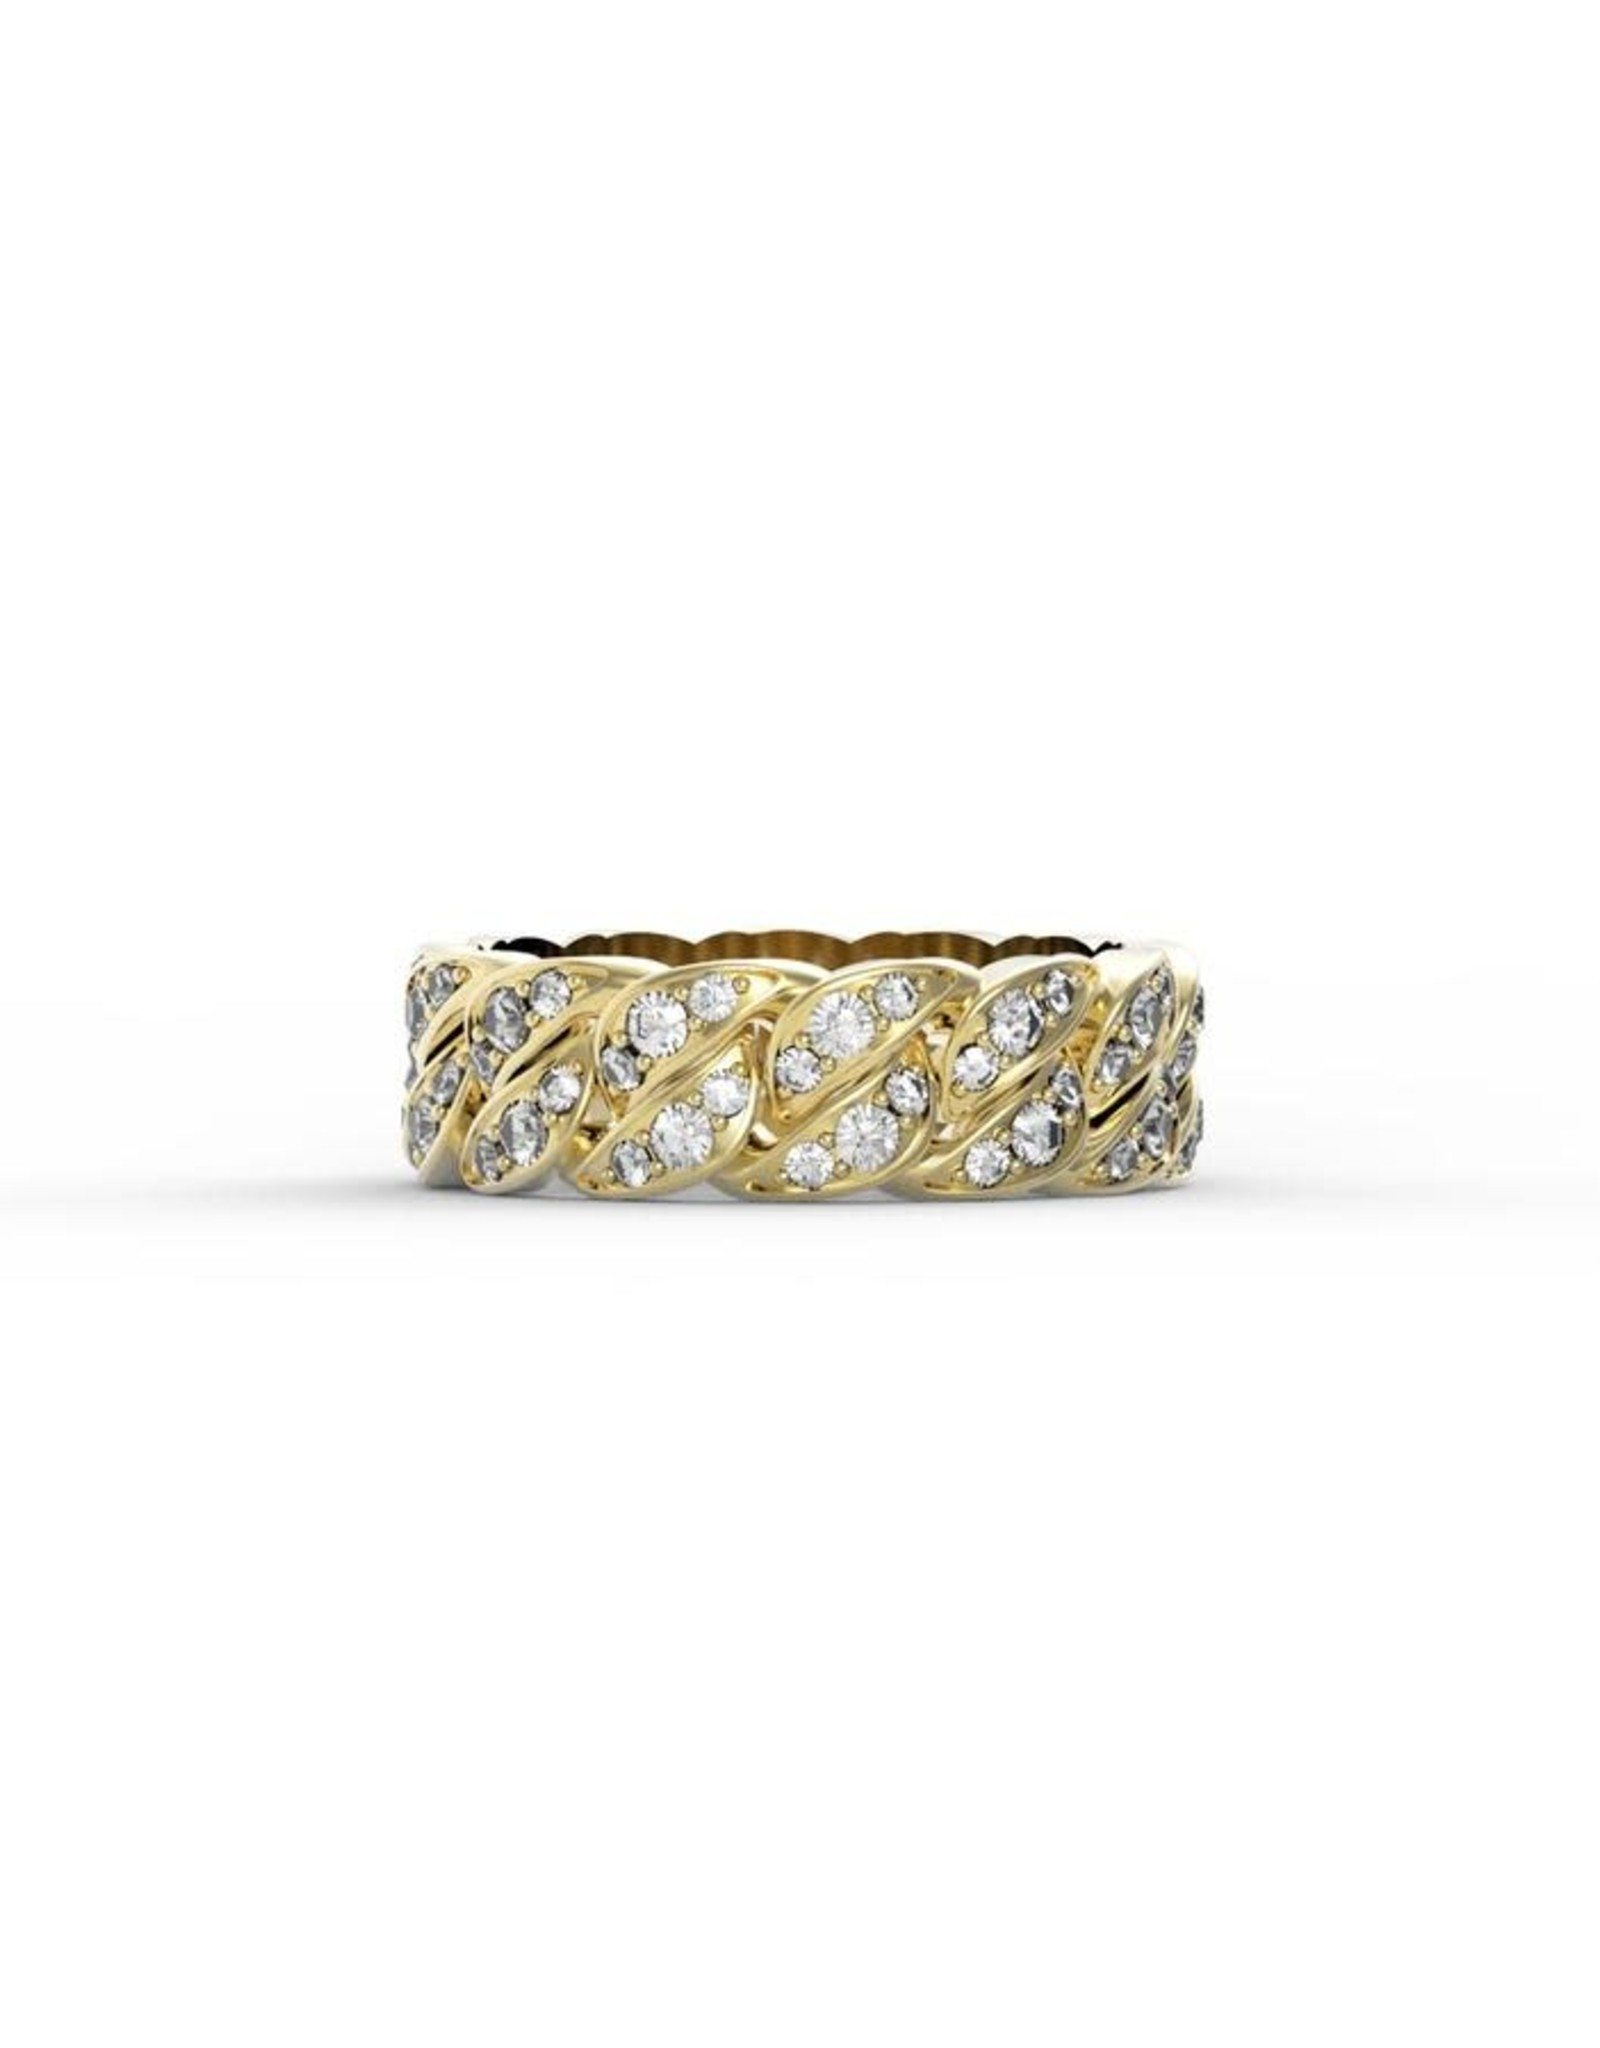 Vice Versa Diamond Pavé Versa Mini